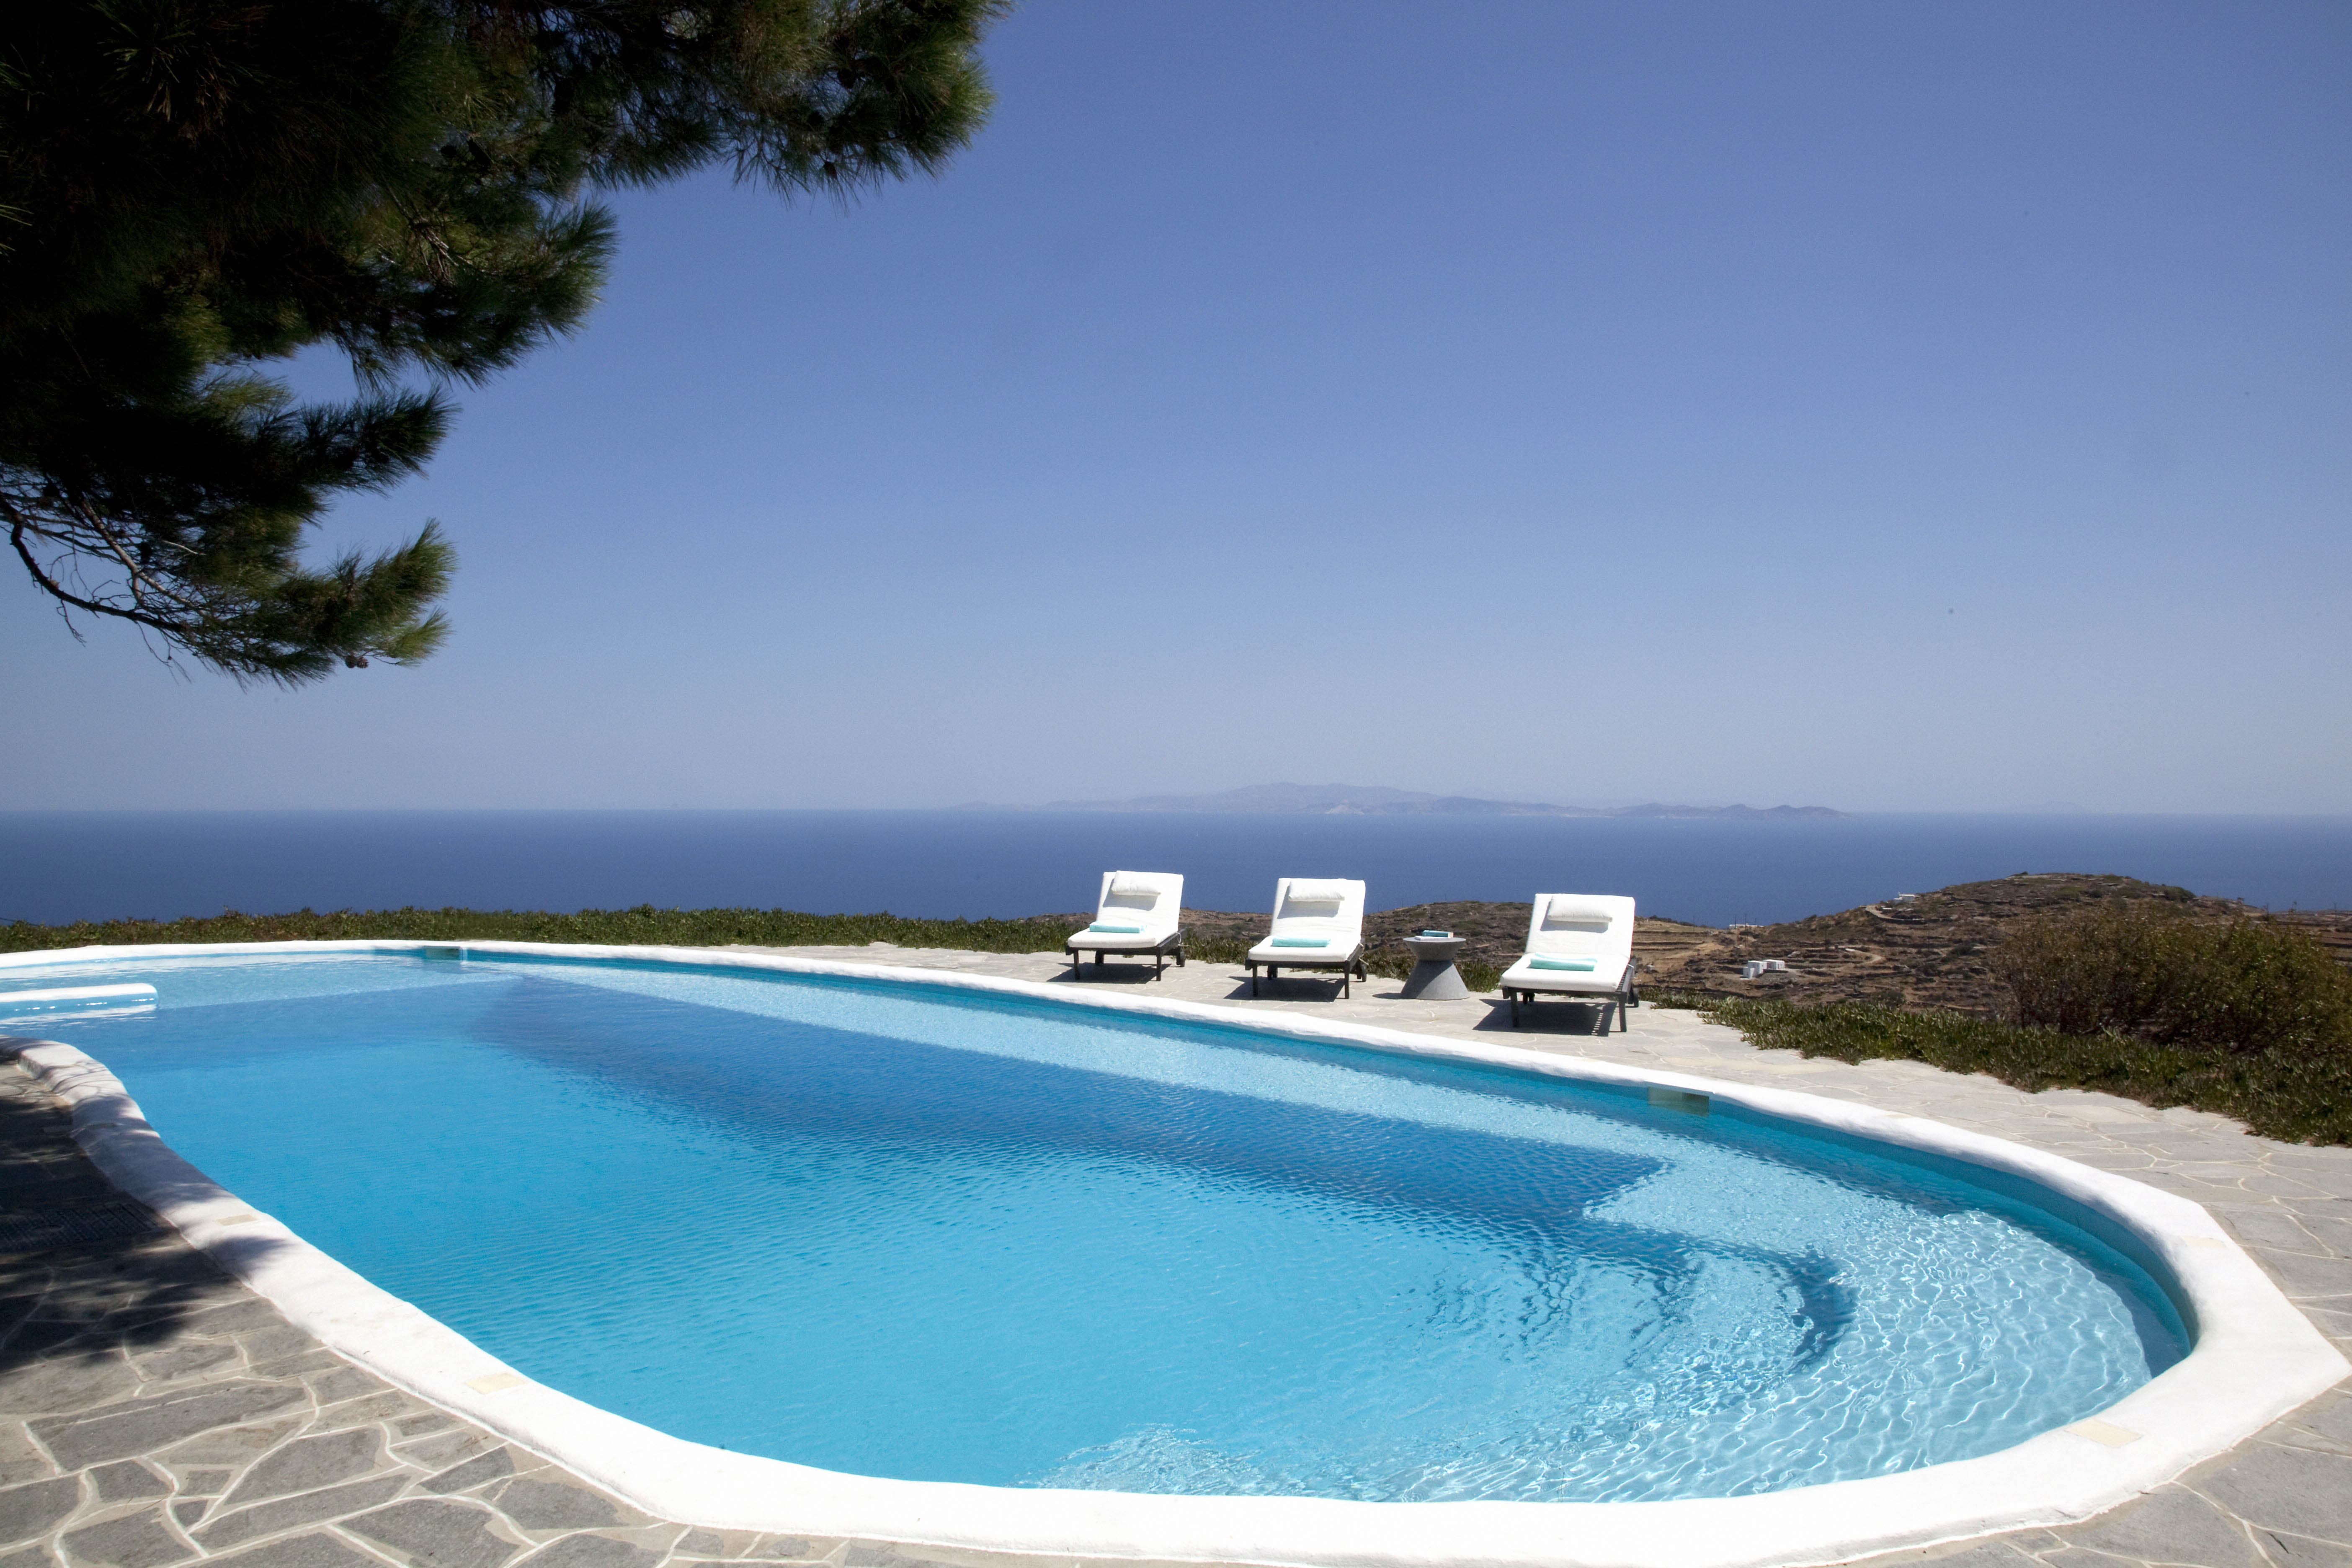 luxury villa rental, Greece, CYCSIF 8701